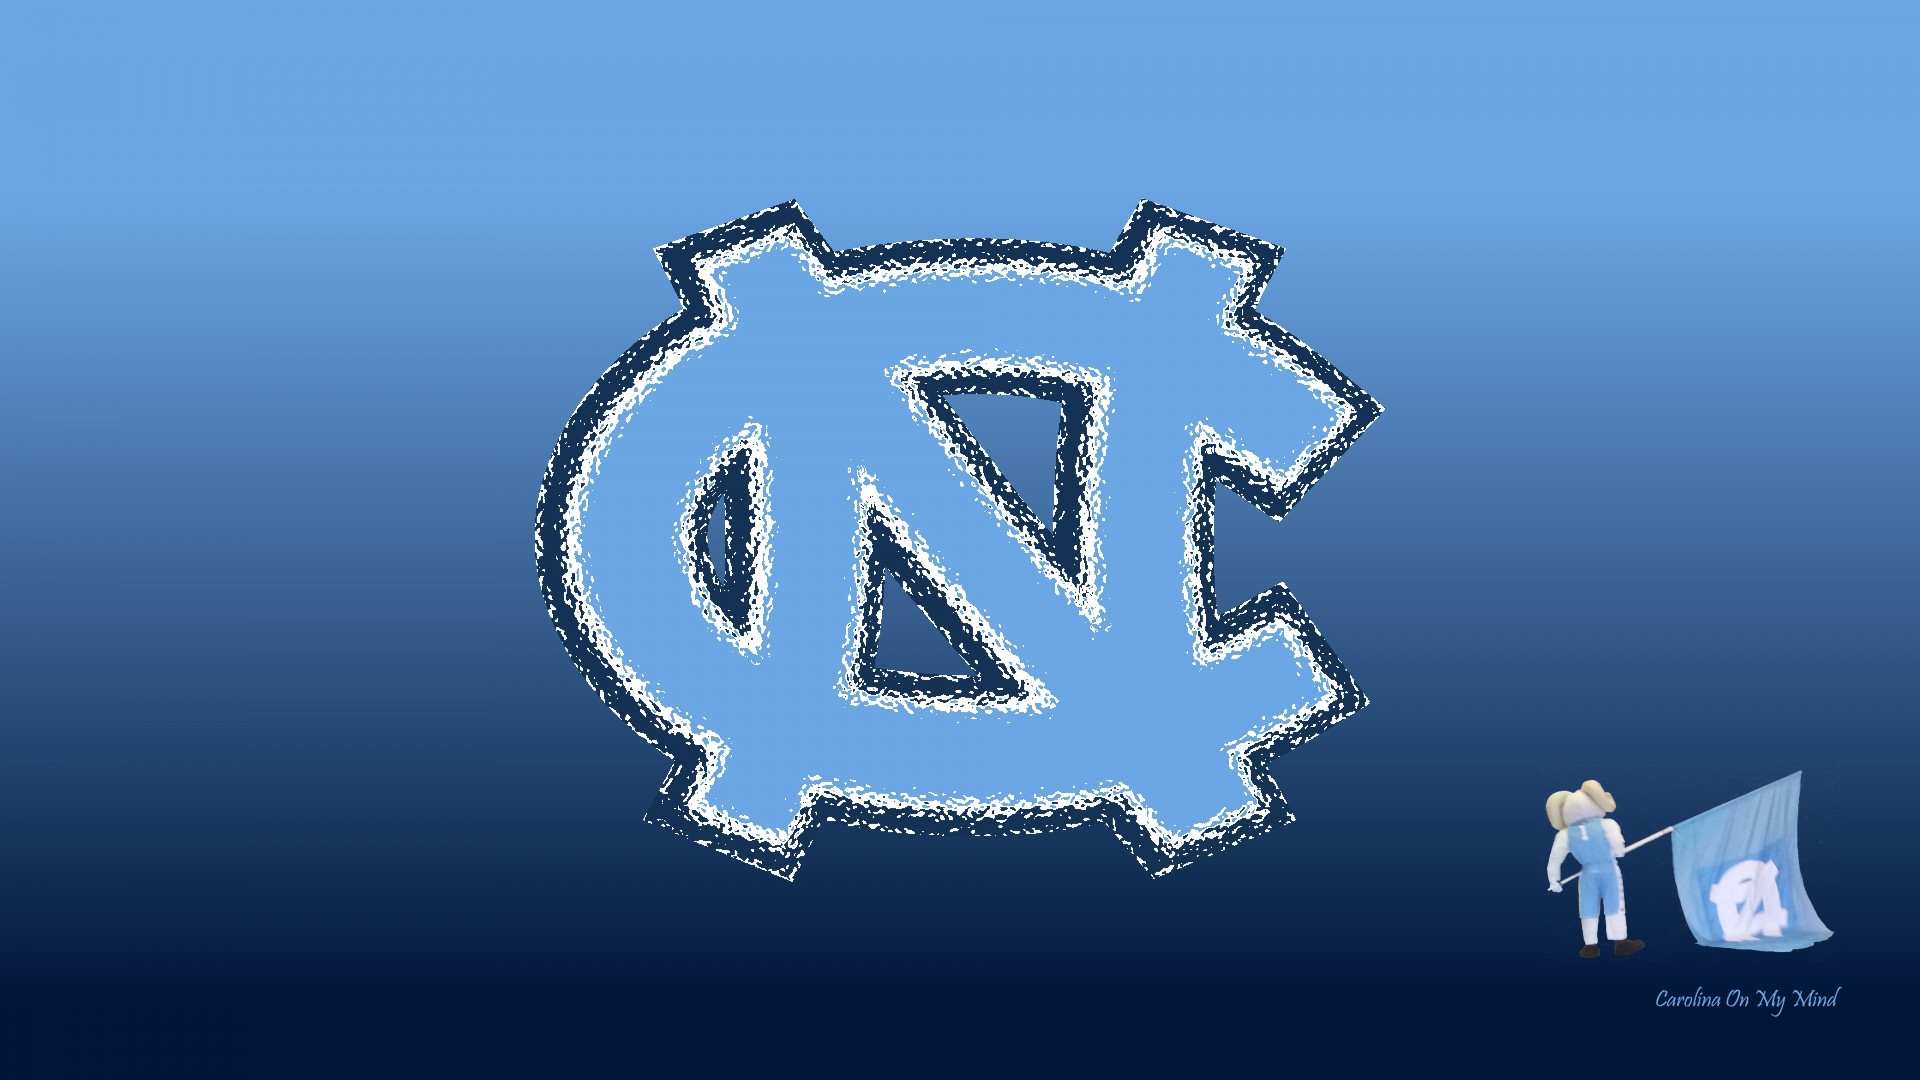 1920x1080 UNC Wallpaper - Glass NC with Rameses and Flag on Blue Gradient 1920 x 1080